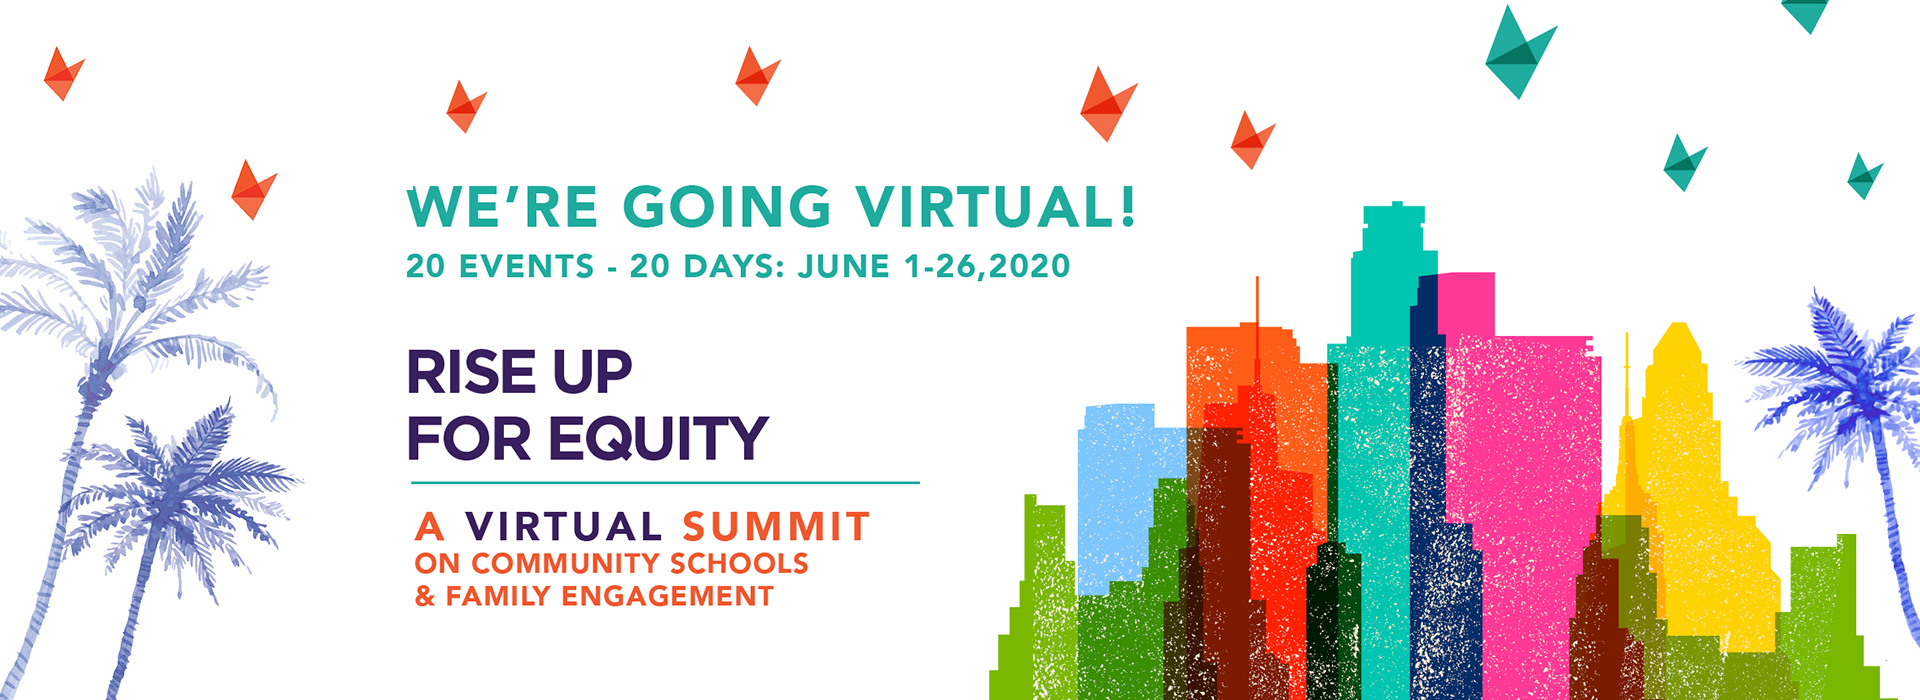 Rise Up for Equity National Summit